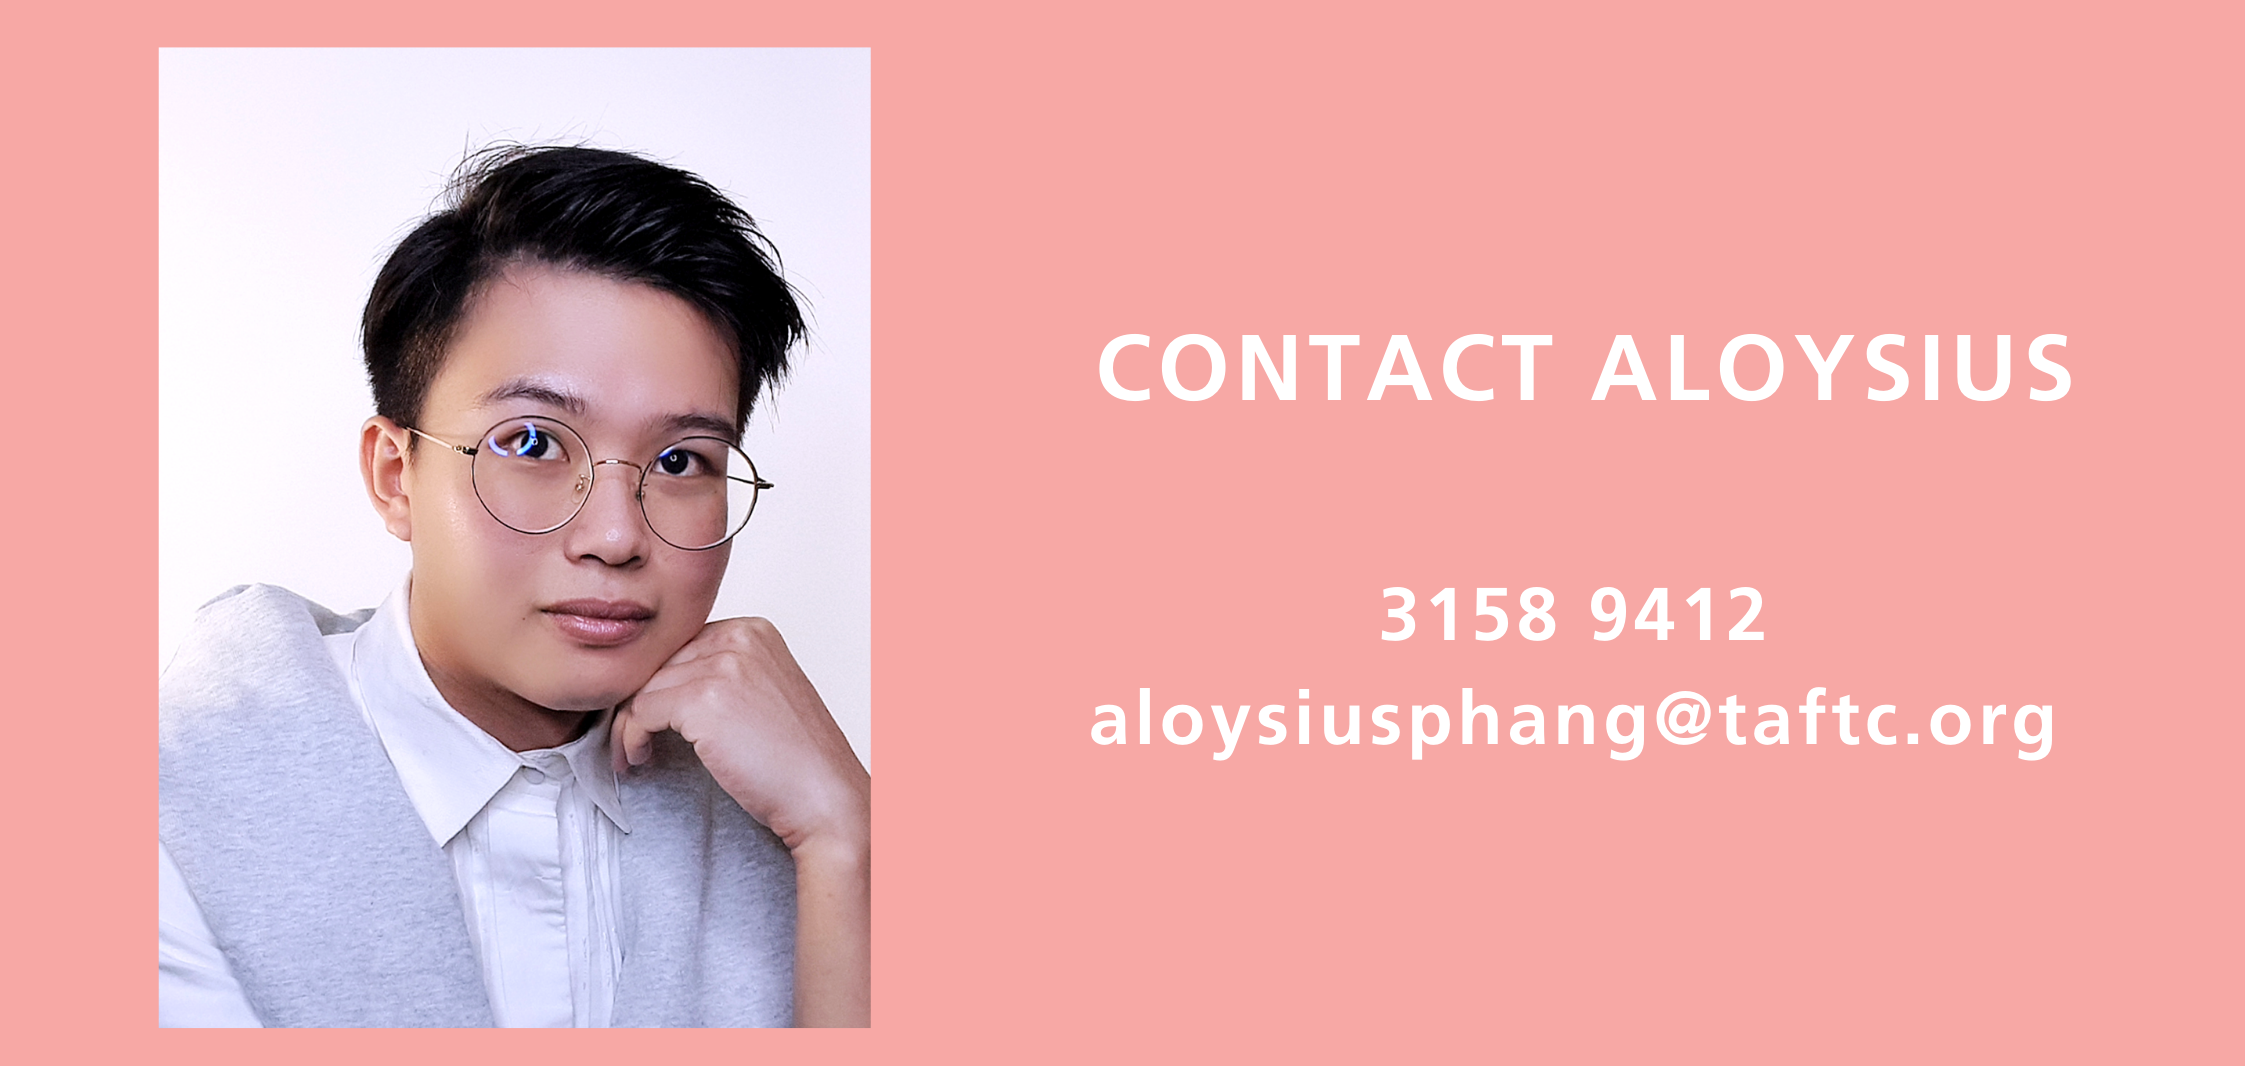 Contact Aloysius from Textile and Fashion Industry Training Centre (TaF.tc)